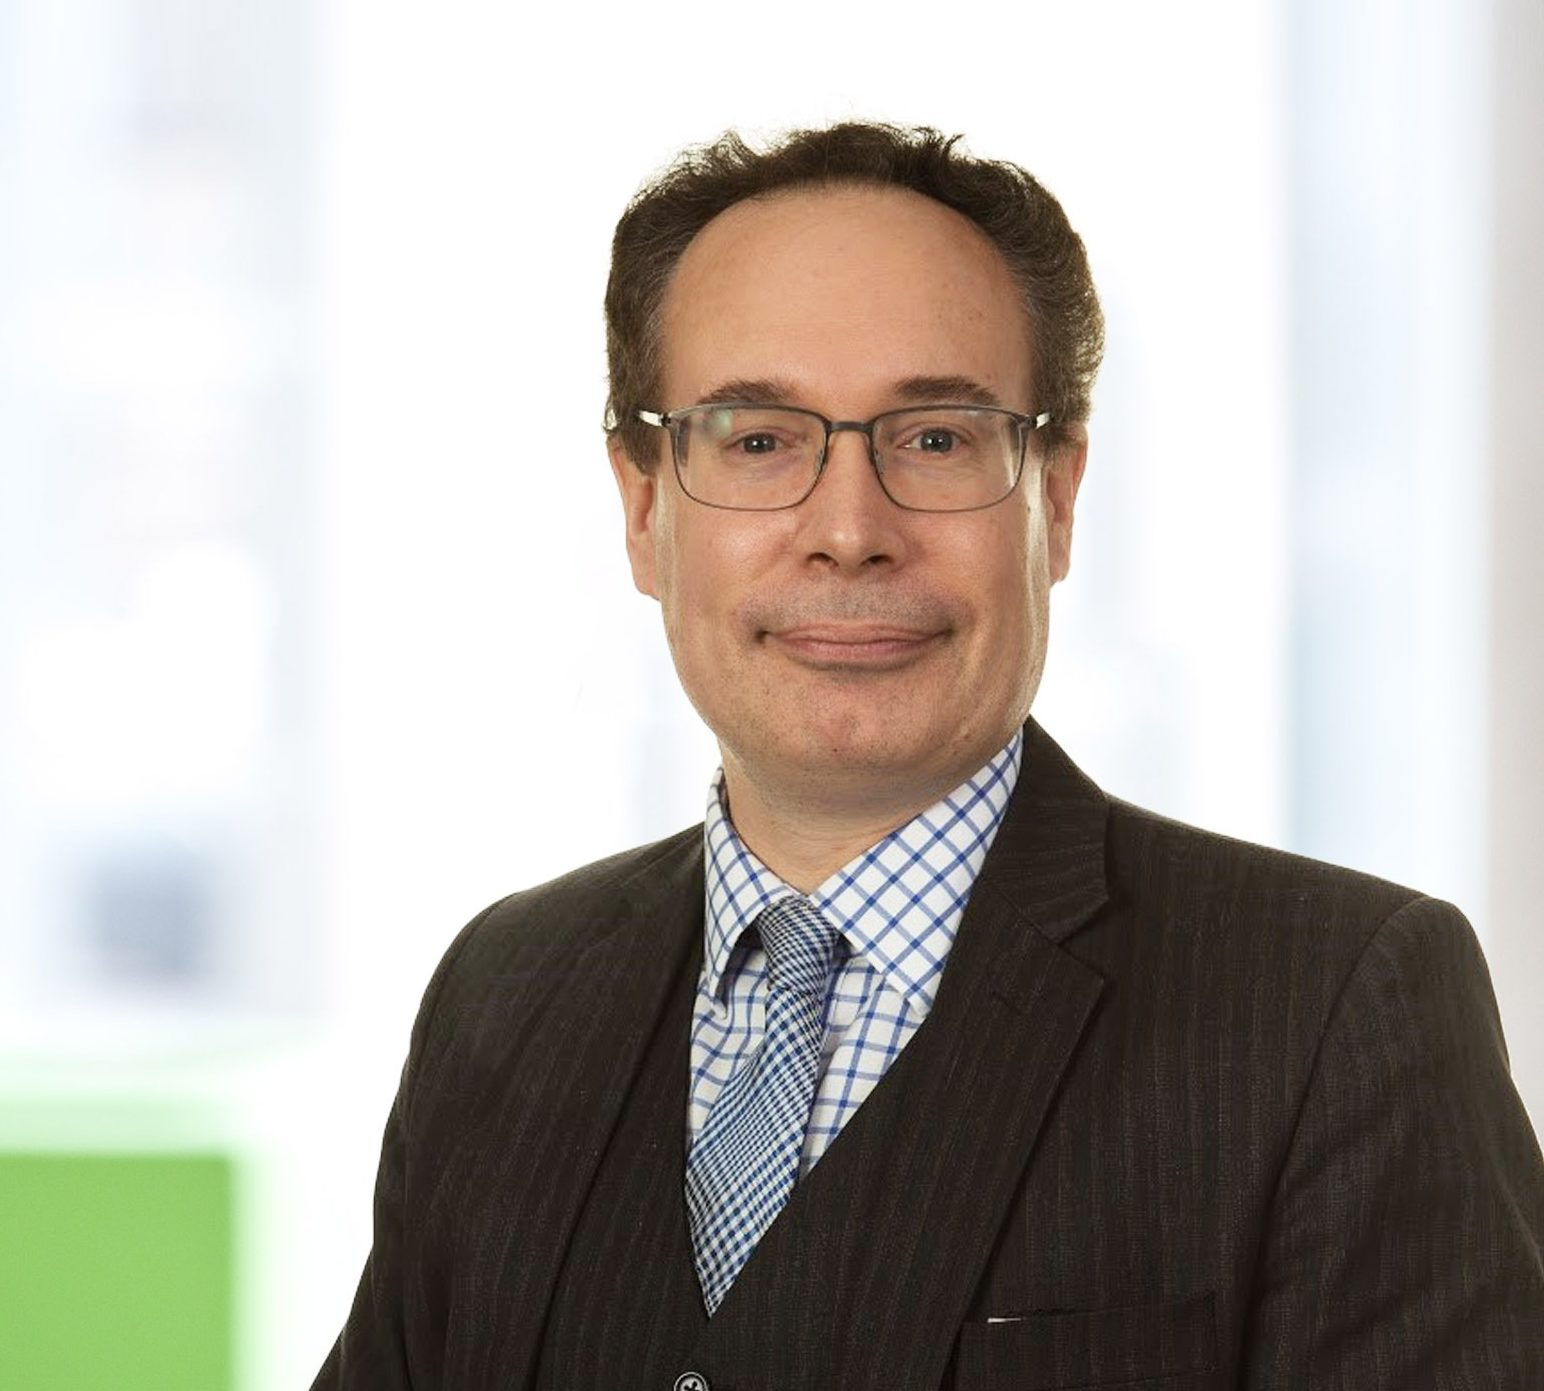 Henry Clarke, Partner at Acuity Law